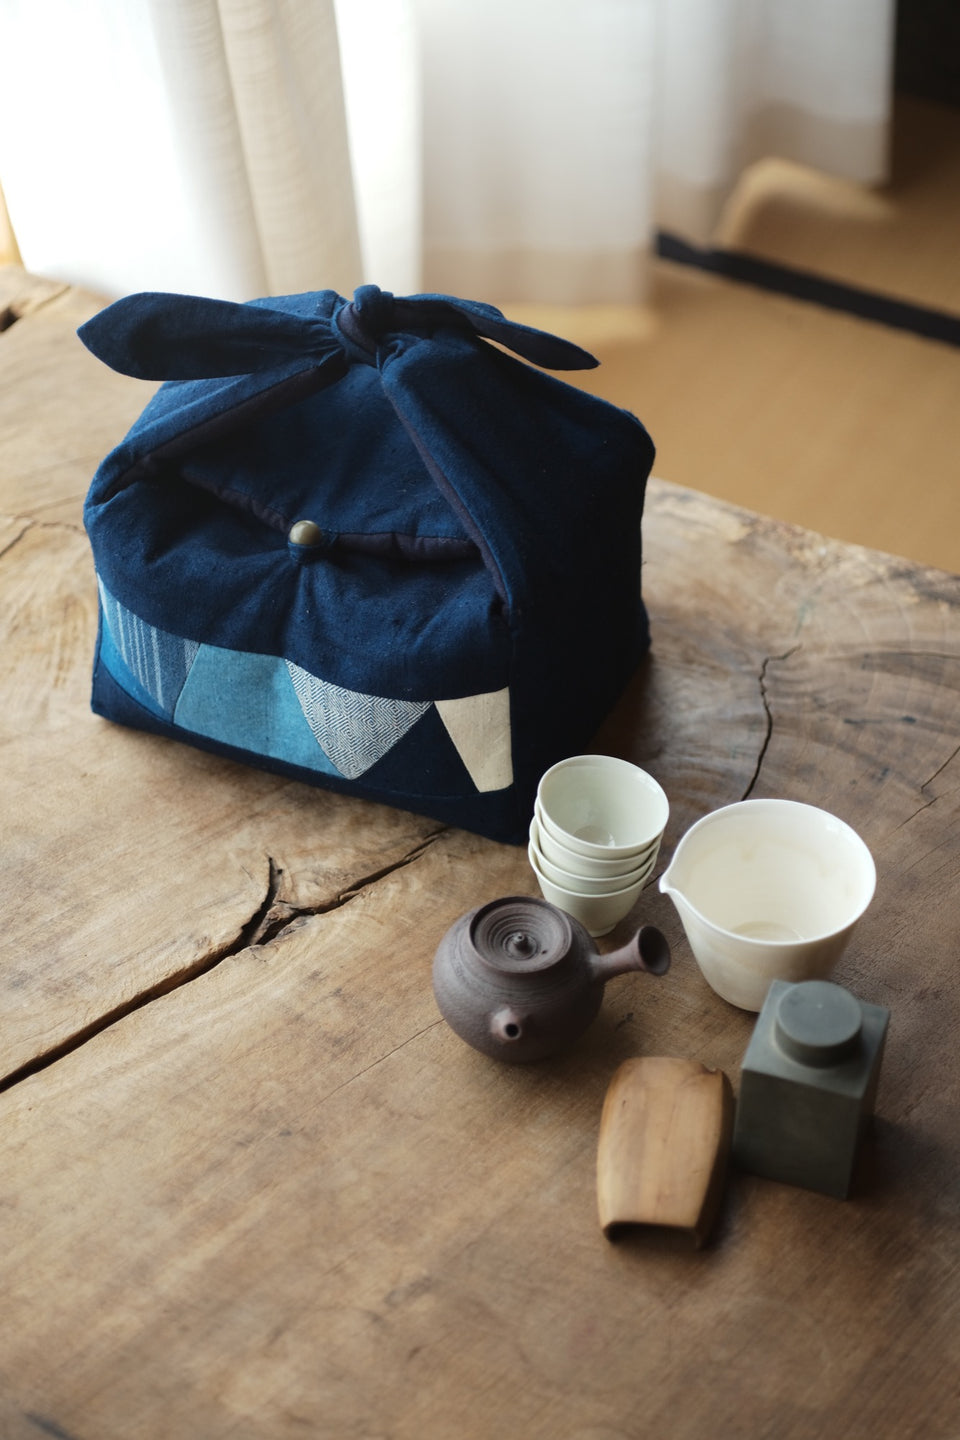 Large Hand-Woven Patchwork Travel Bag for Teapots and Teacup Set